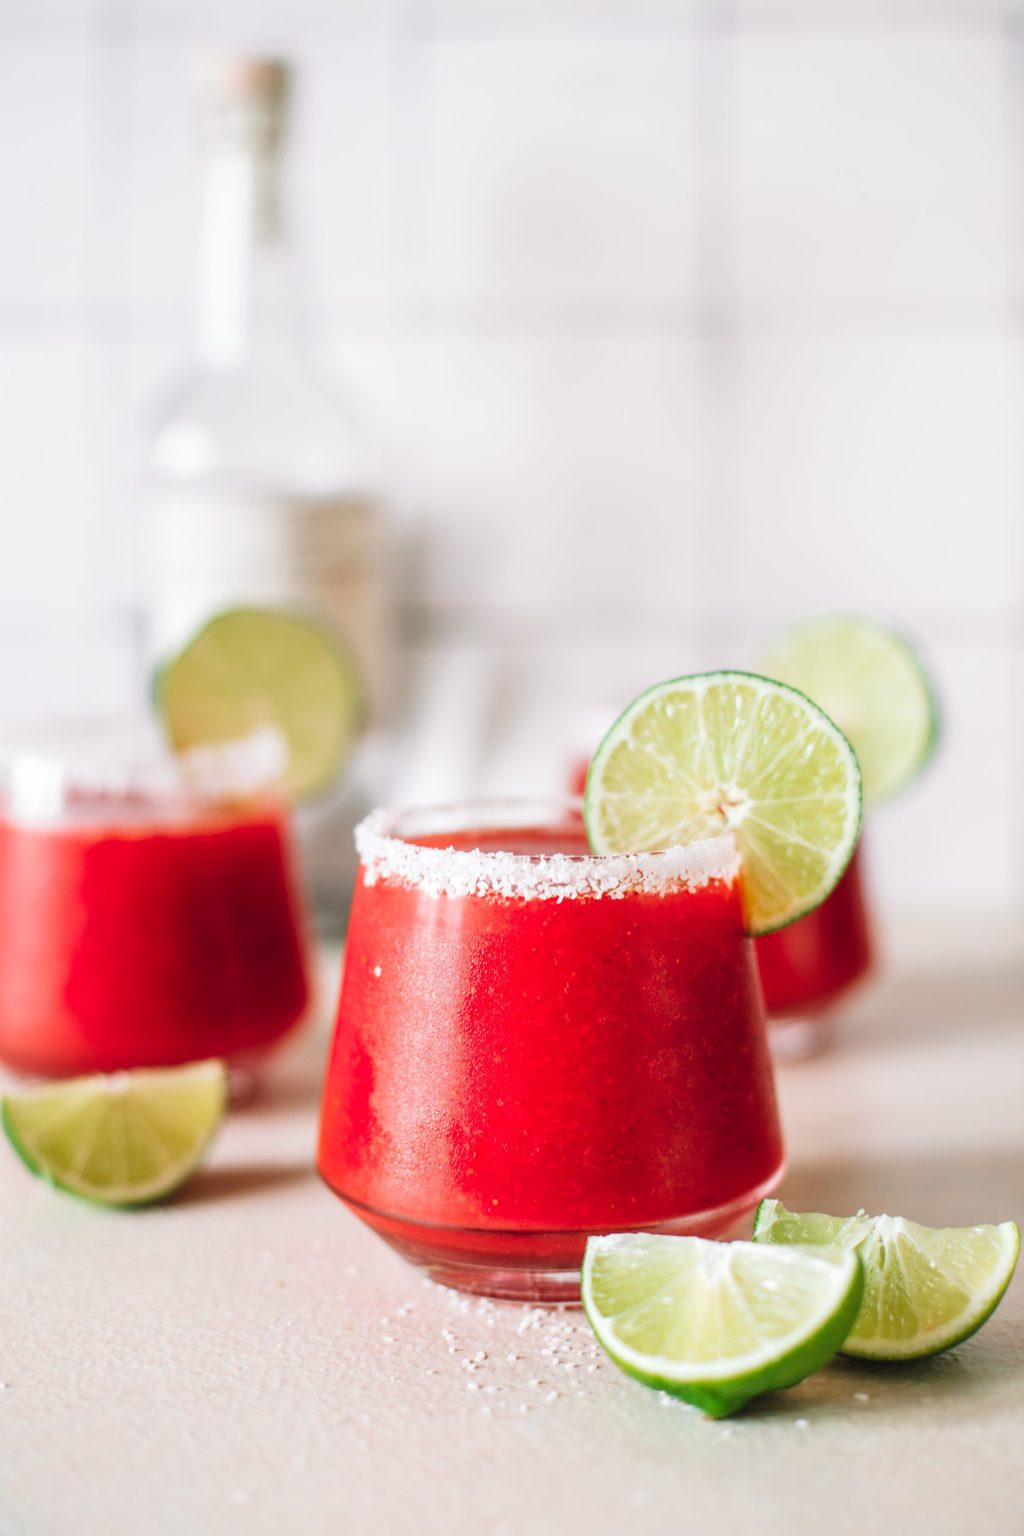 Frozen strawberry margarita in a clear, low ball glass garnished with a lime wheel.